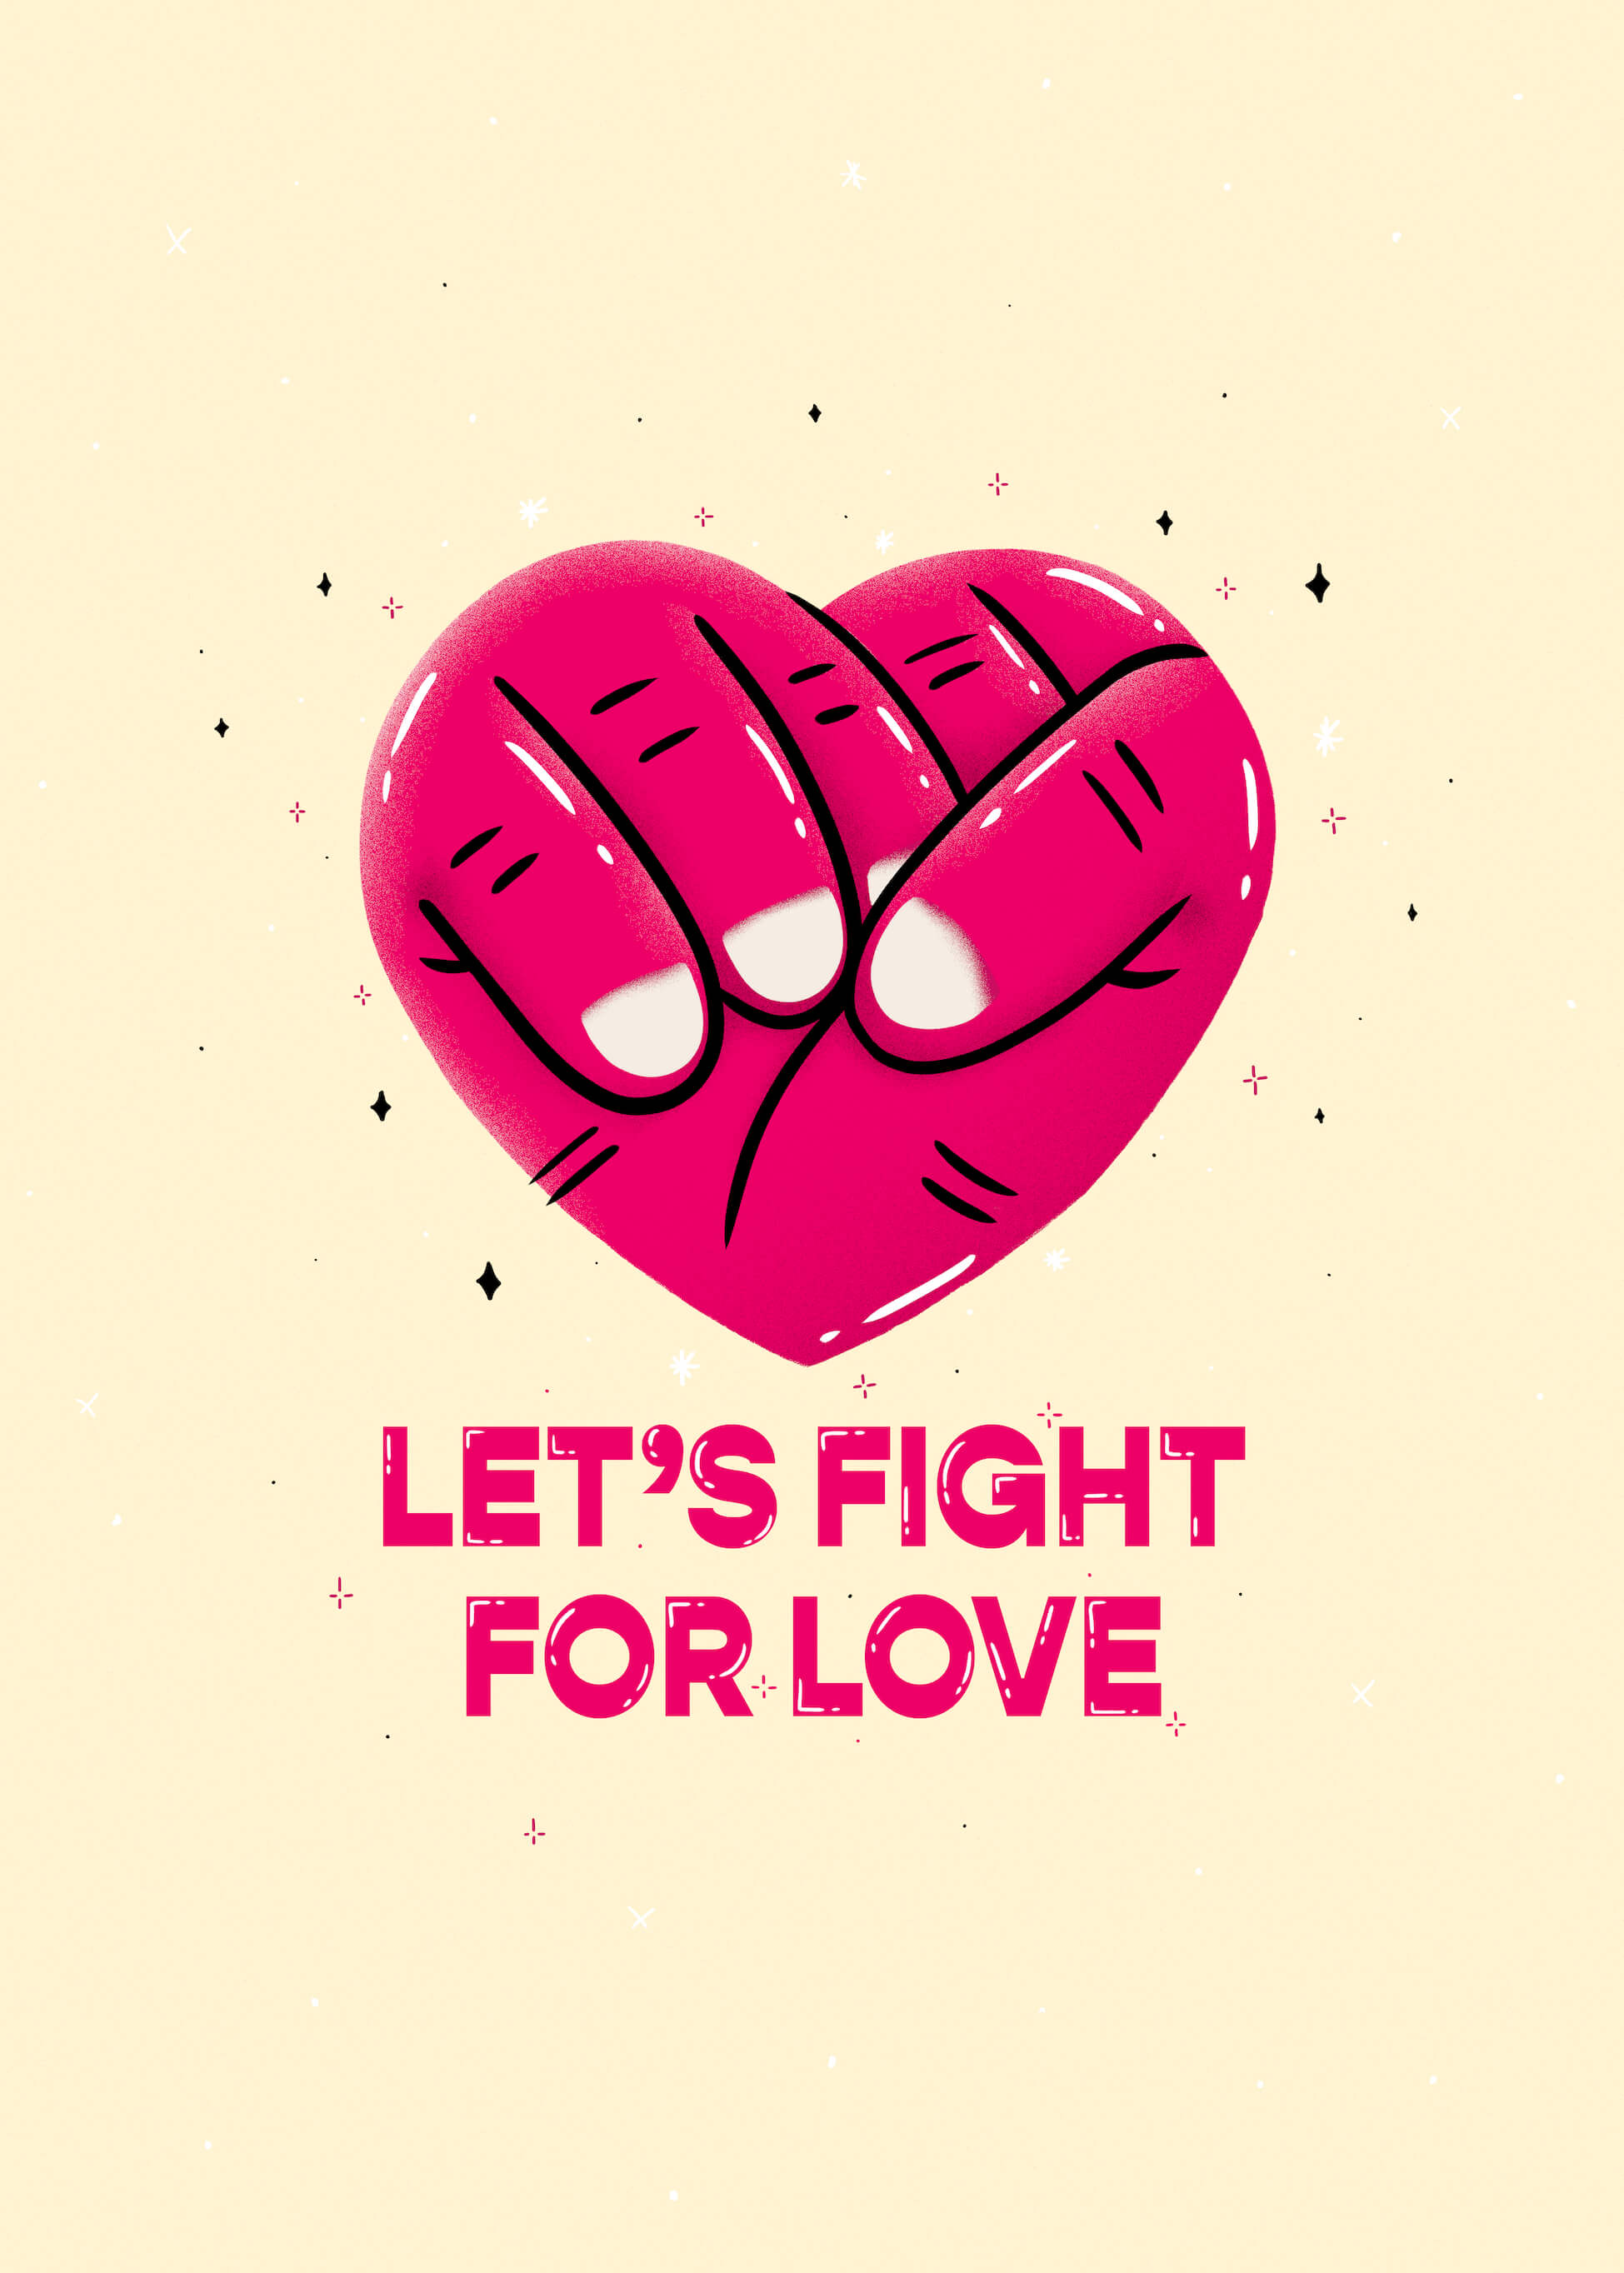 Let's Fight For Love main image